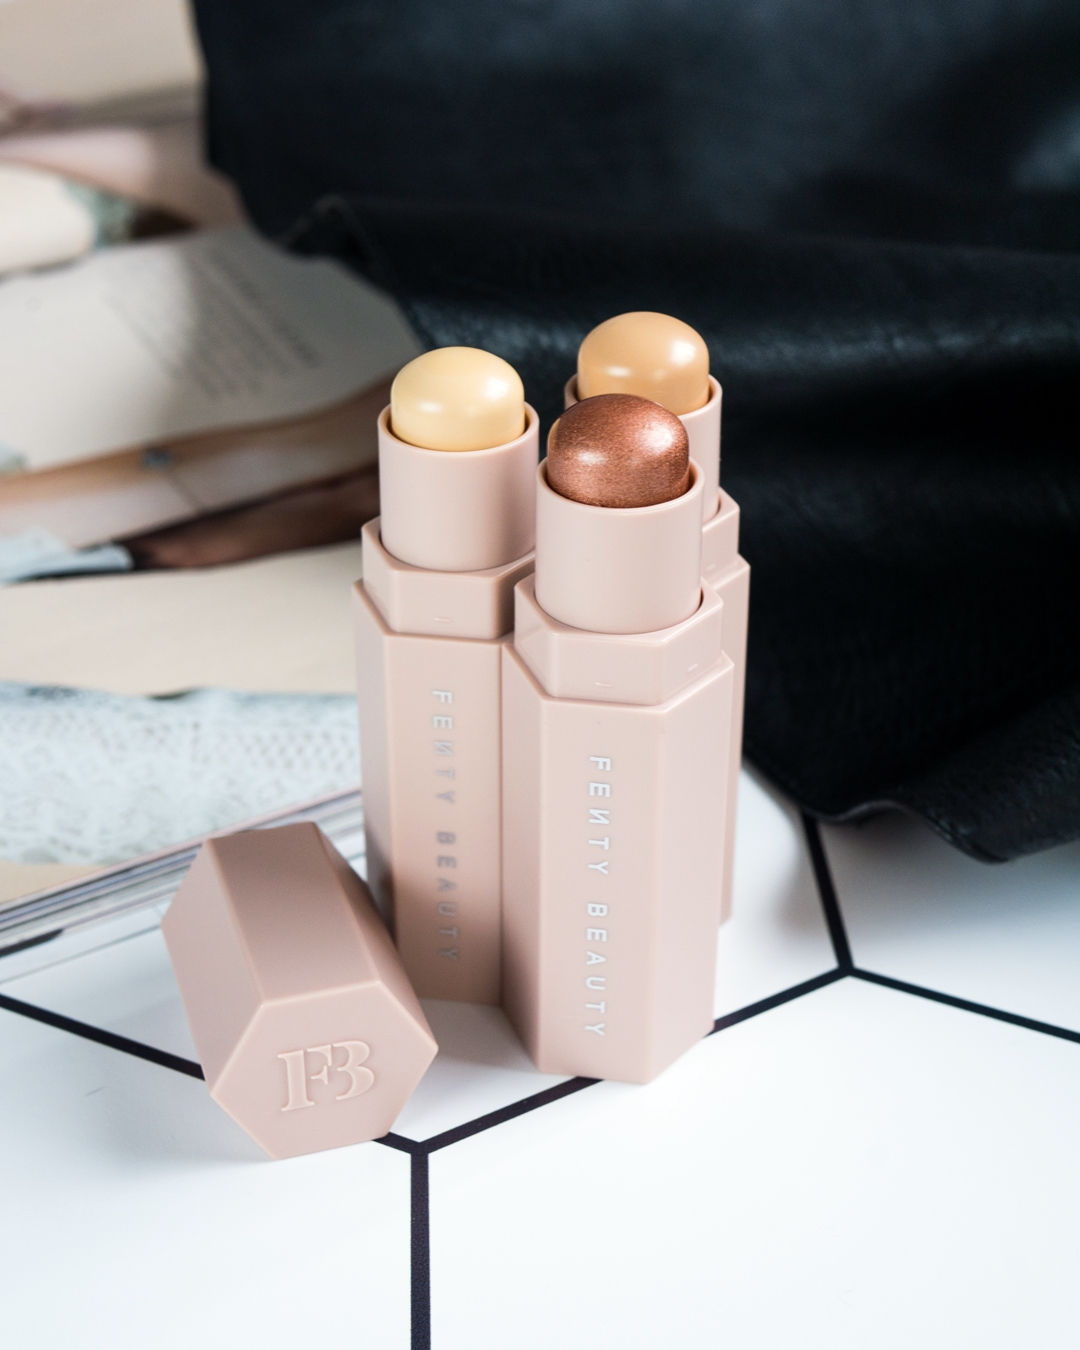 Fenty Beauty Match Stix